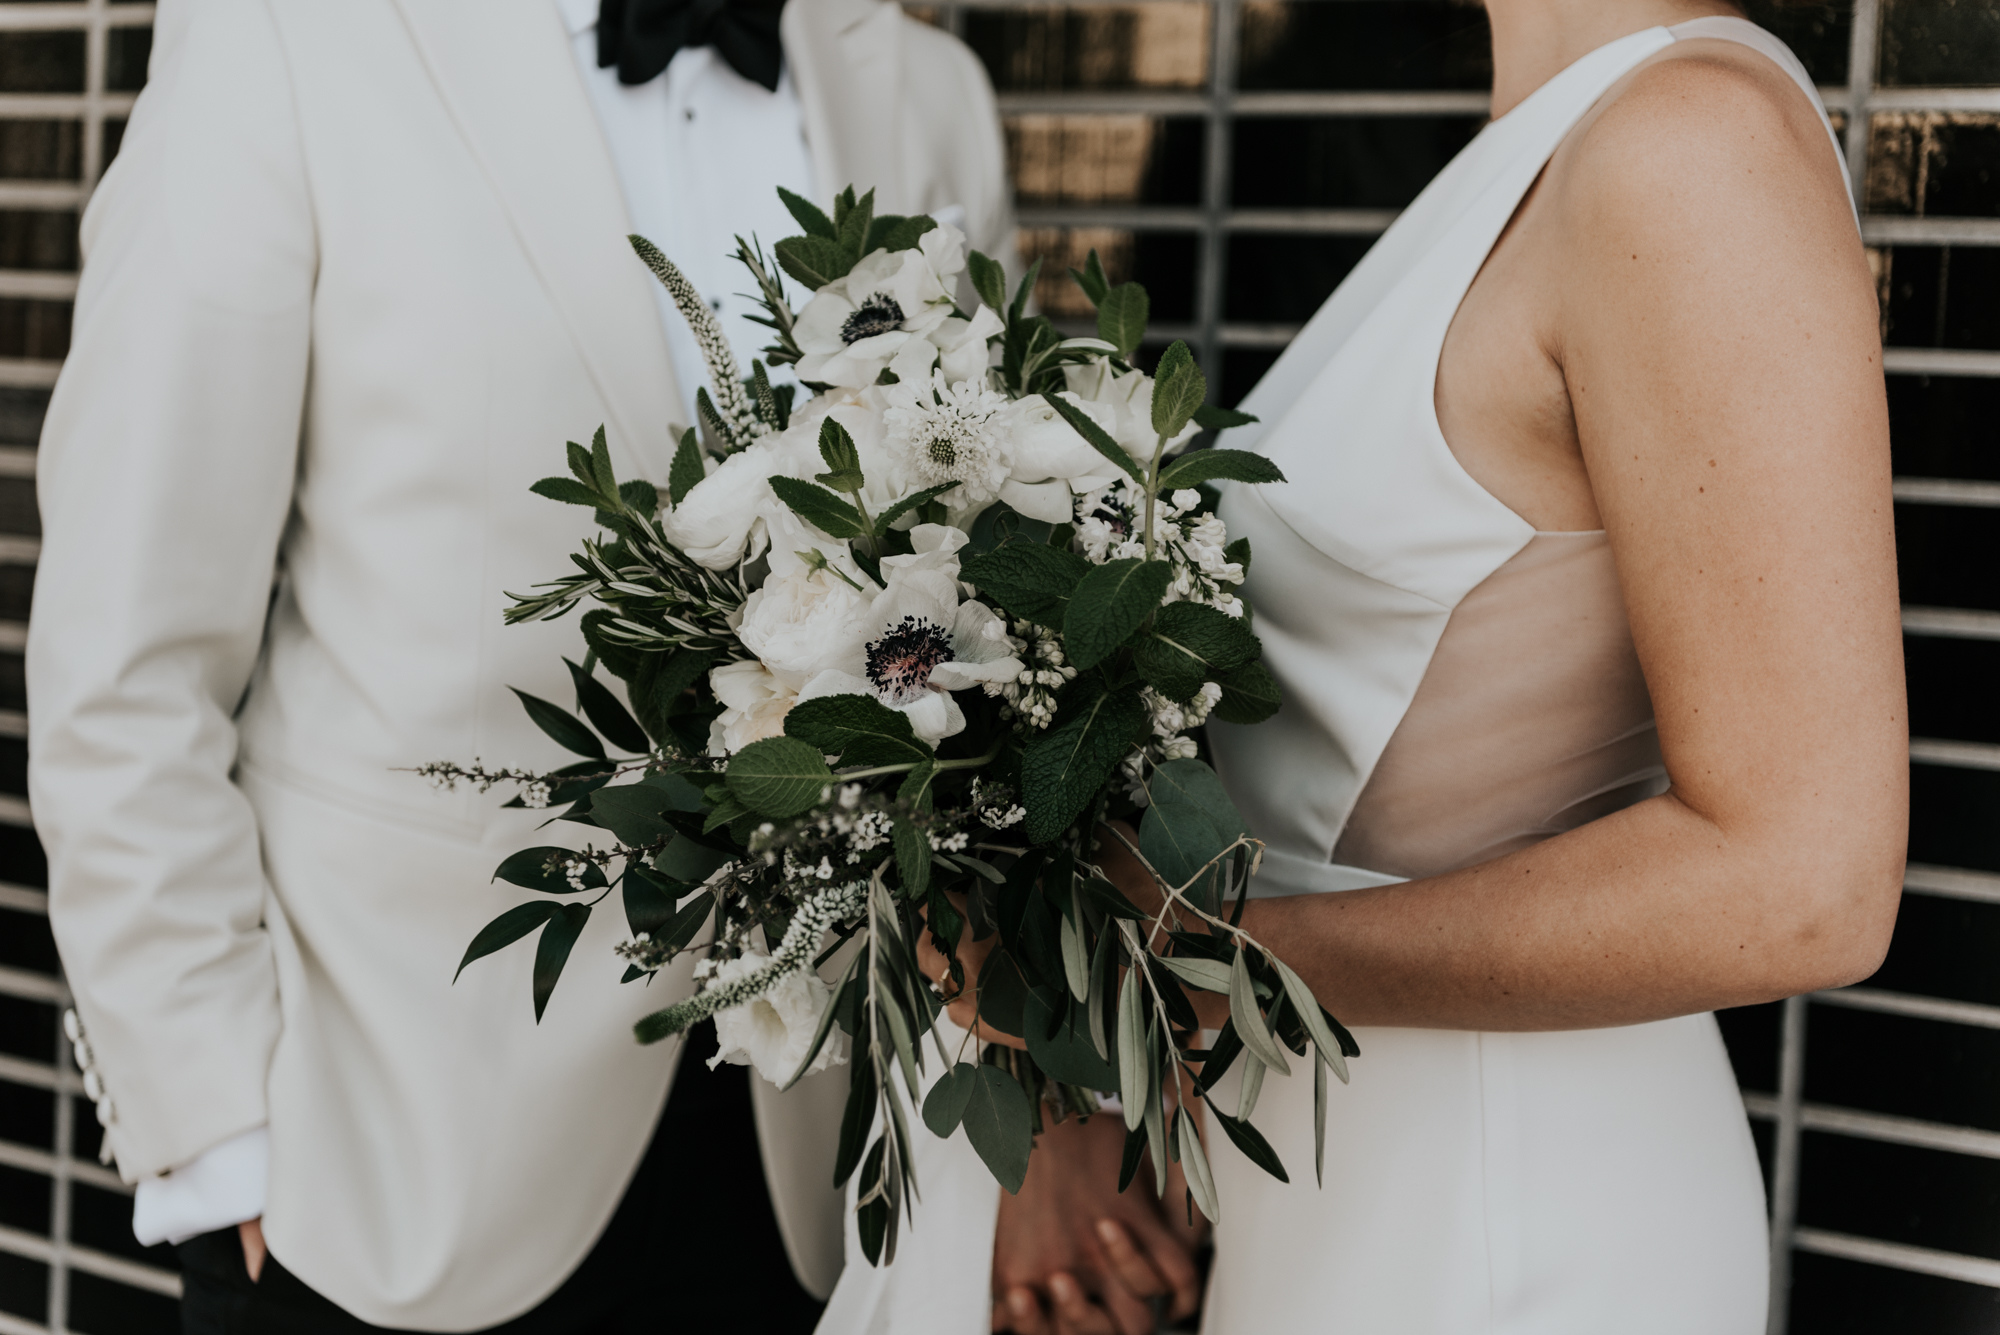 Intimate Wedding day Bouquet Details at South Congress Hotel in Austin, Texas